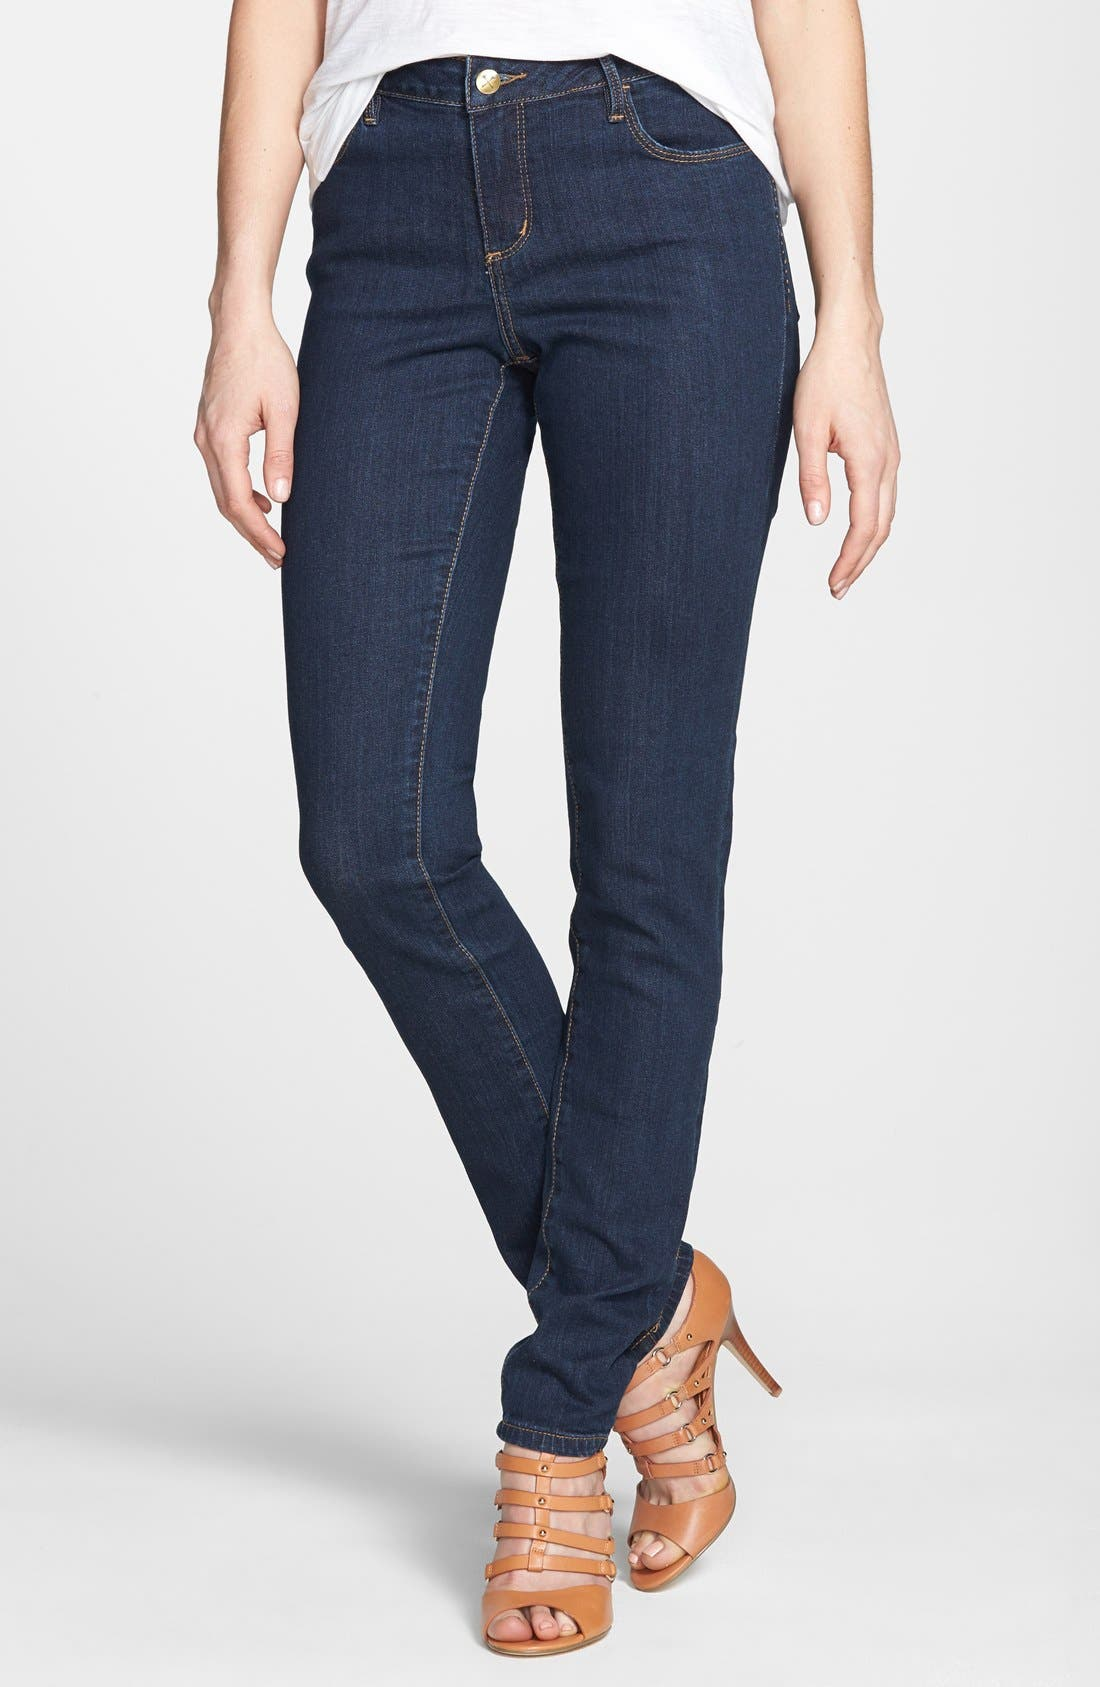 Alternate Image 1 Selected - Christopher Blue 'Sophia' Stretch Skinny Jeans